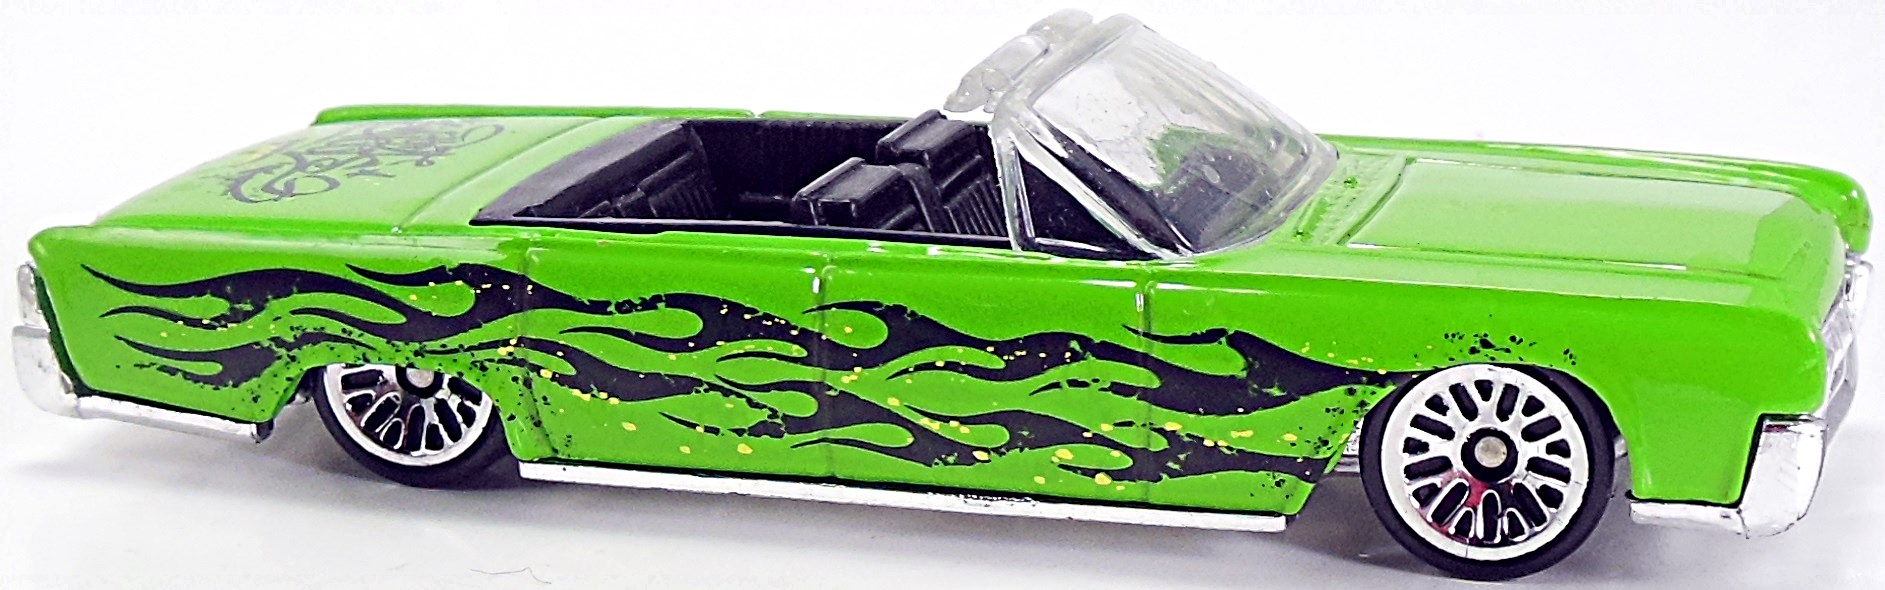 1964 lincoln continental convertible 82mm 2000 hot wheels newsletter. Black Bedroom Furniture Sets. Home Design Ideas